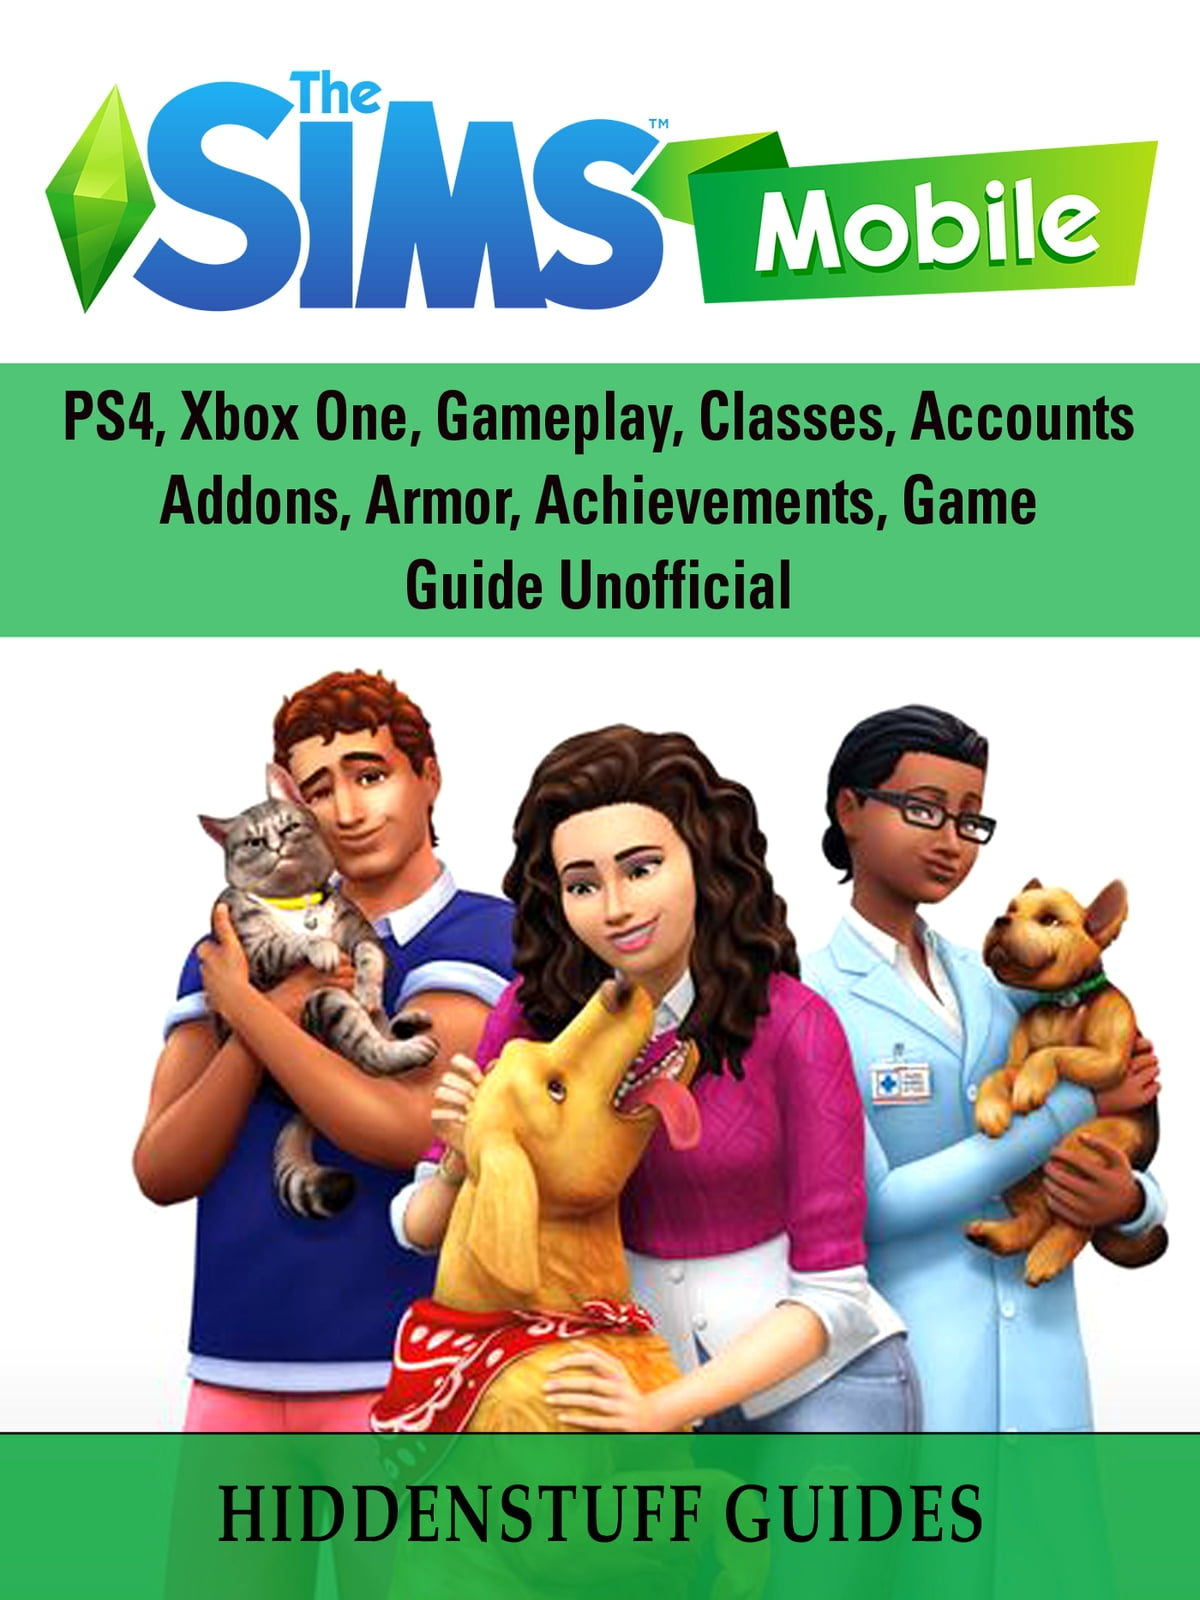 The Sims Mobile, Cheats, Hacks, APK, MOD, APP, Strategy, Tips, Download,  Game Guide Unofficial ebook by Hiddenstuff Guides - Rakuten Kobo